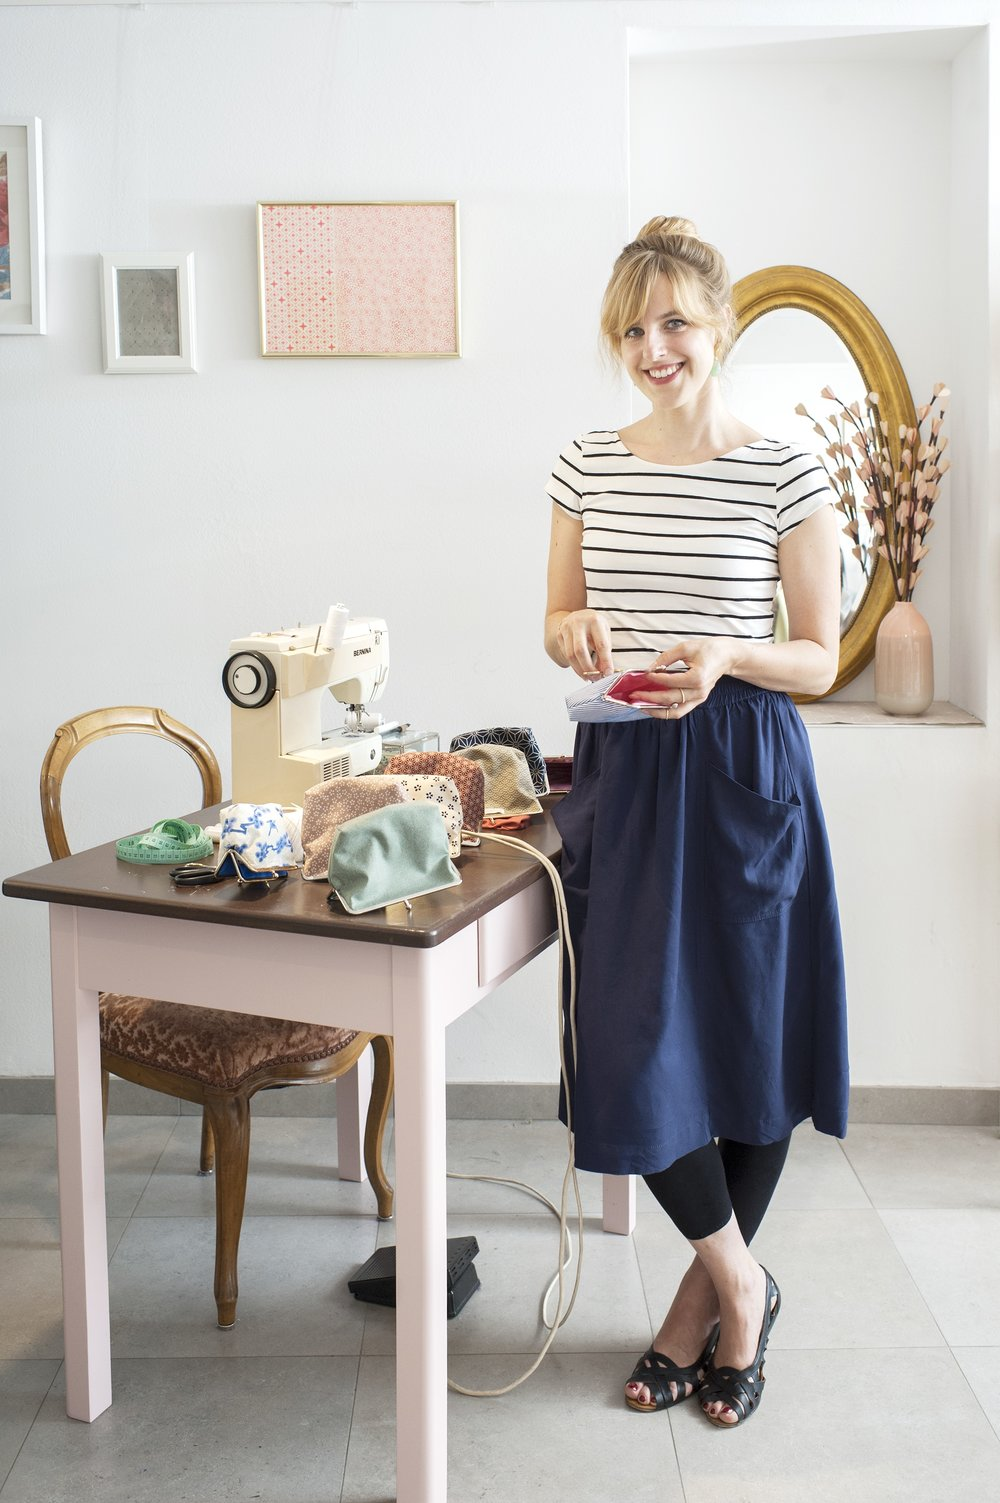 Stefanie was raised surrounded with sewing machines, fabrics and needles. In 2009, she founded her own label of clip purses, make up bags cushions, scarves and much more. Discover this glowing lady.